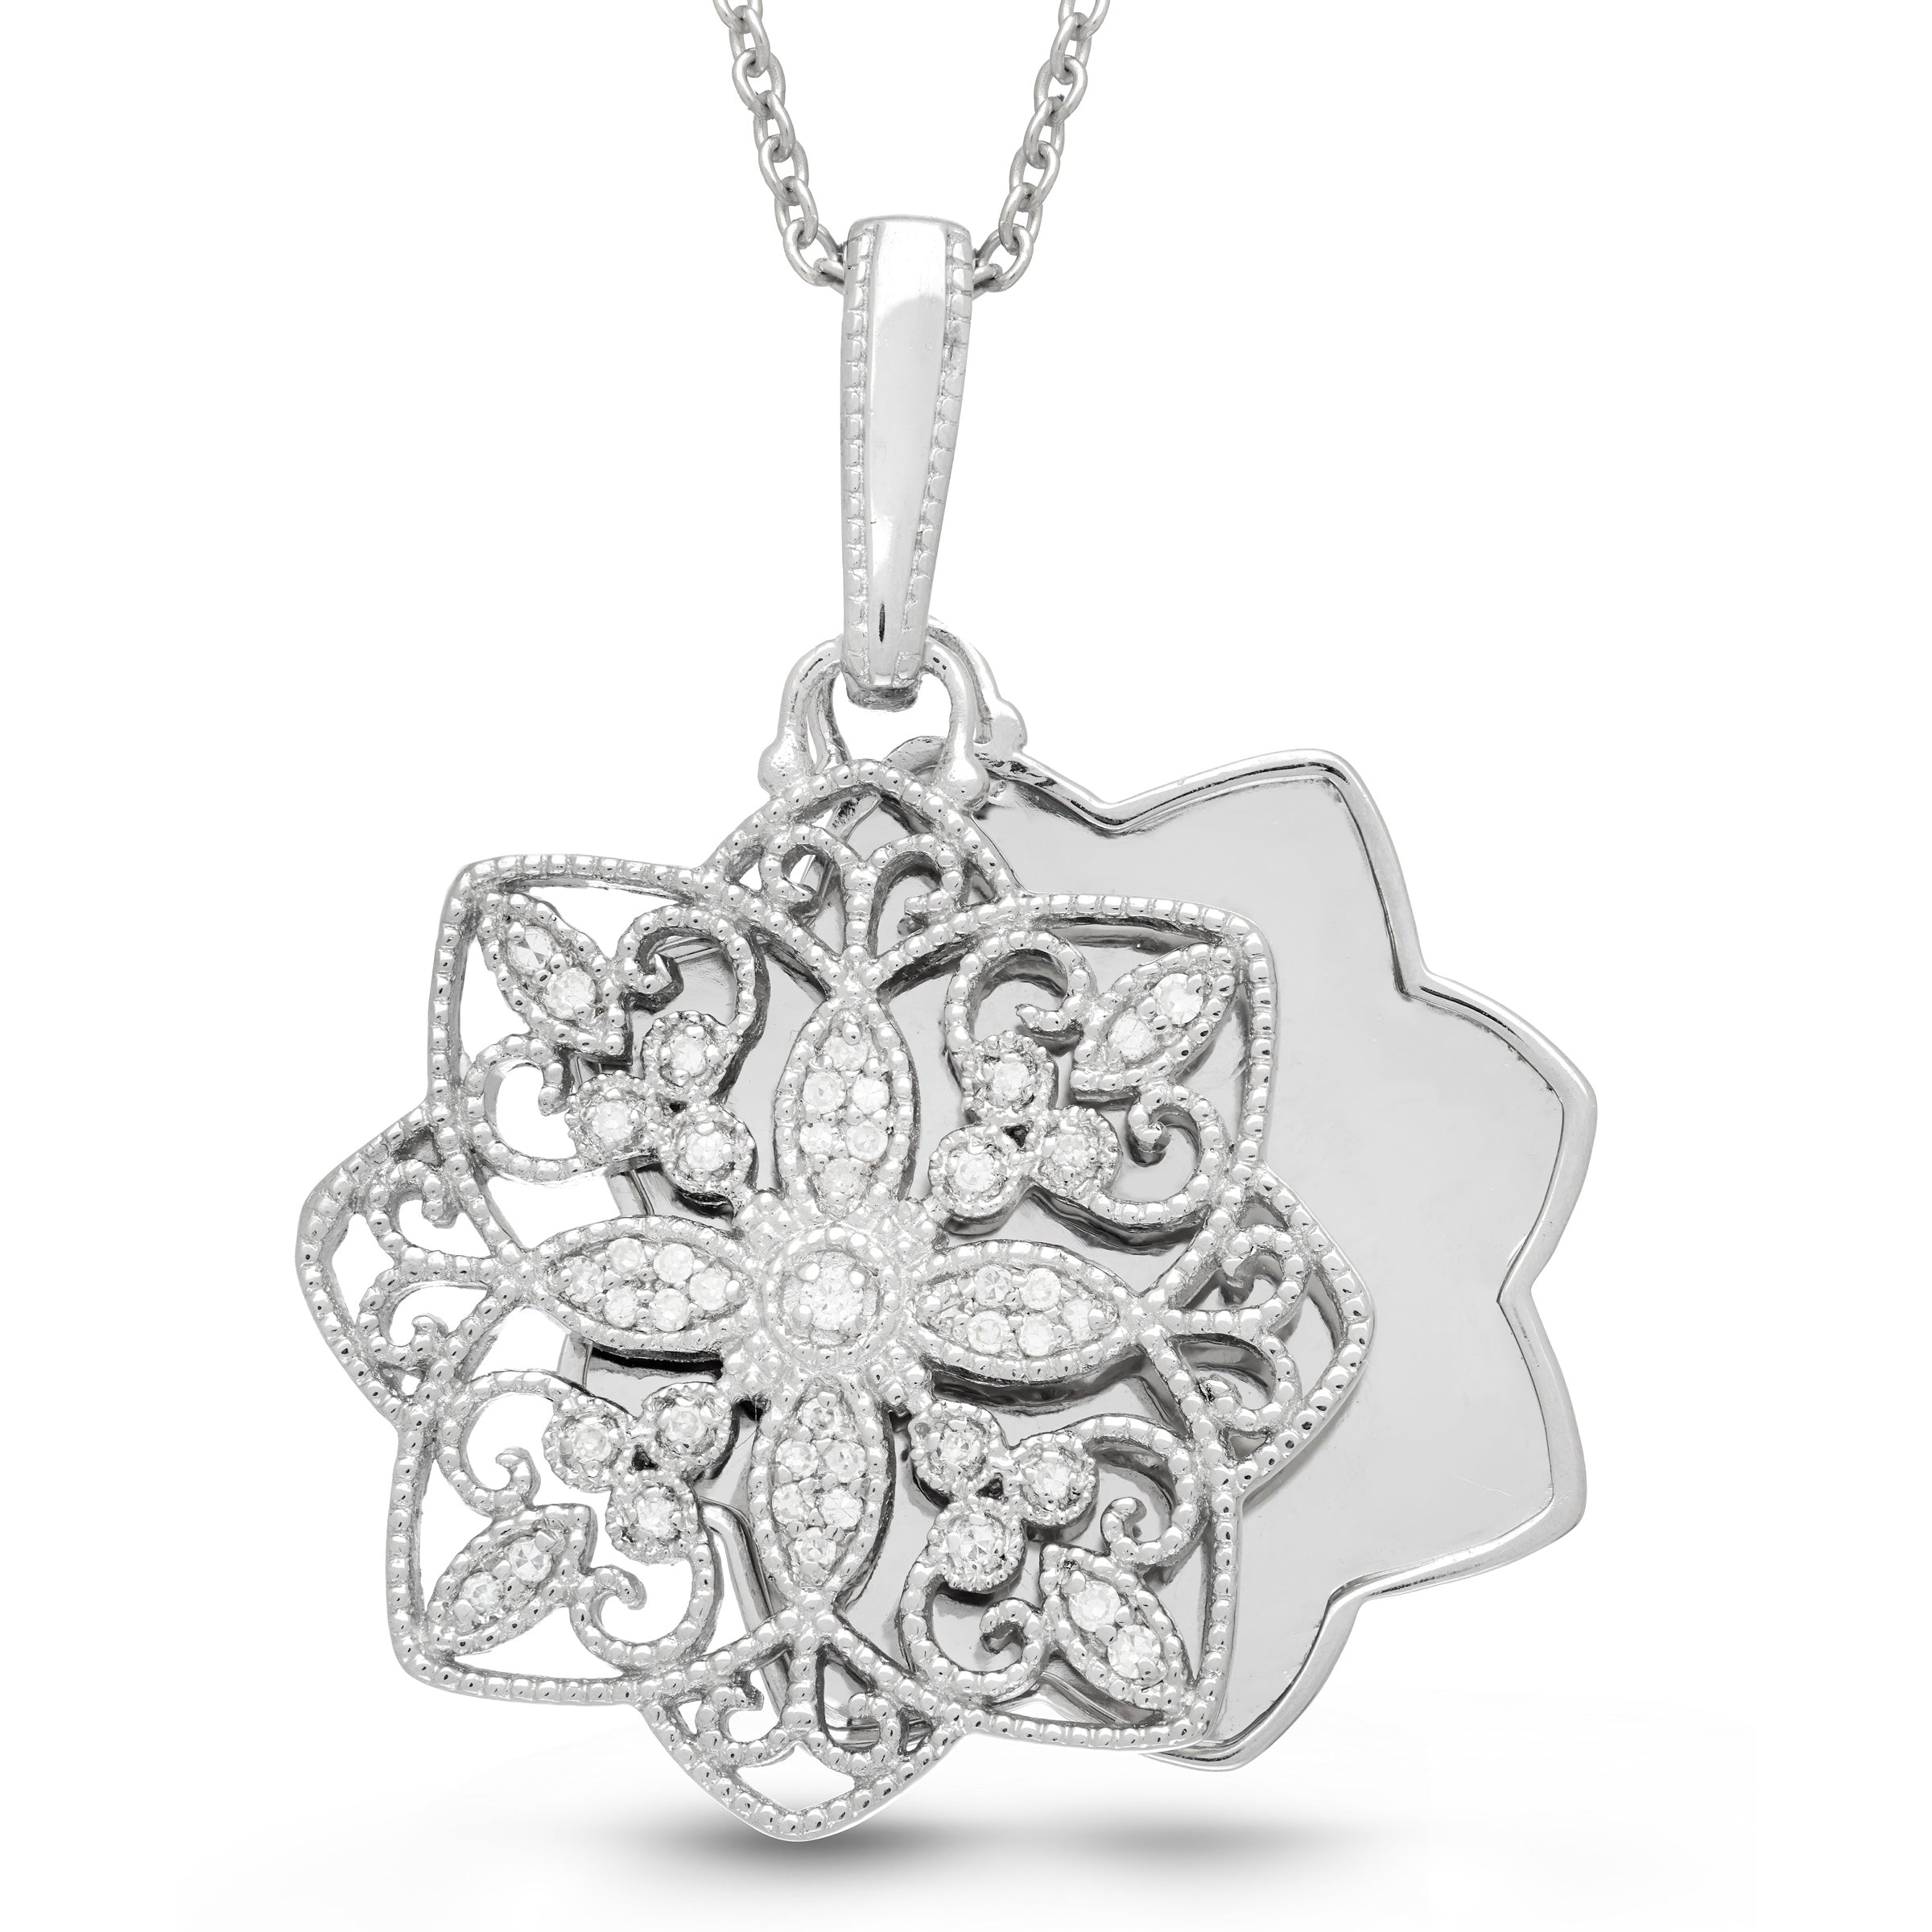 Vintage Style Keepsake Open Locket with Diamonds, Sterling Silver